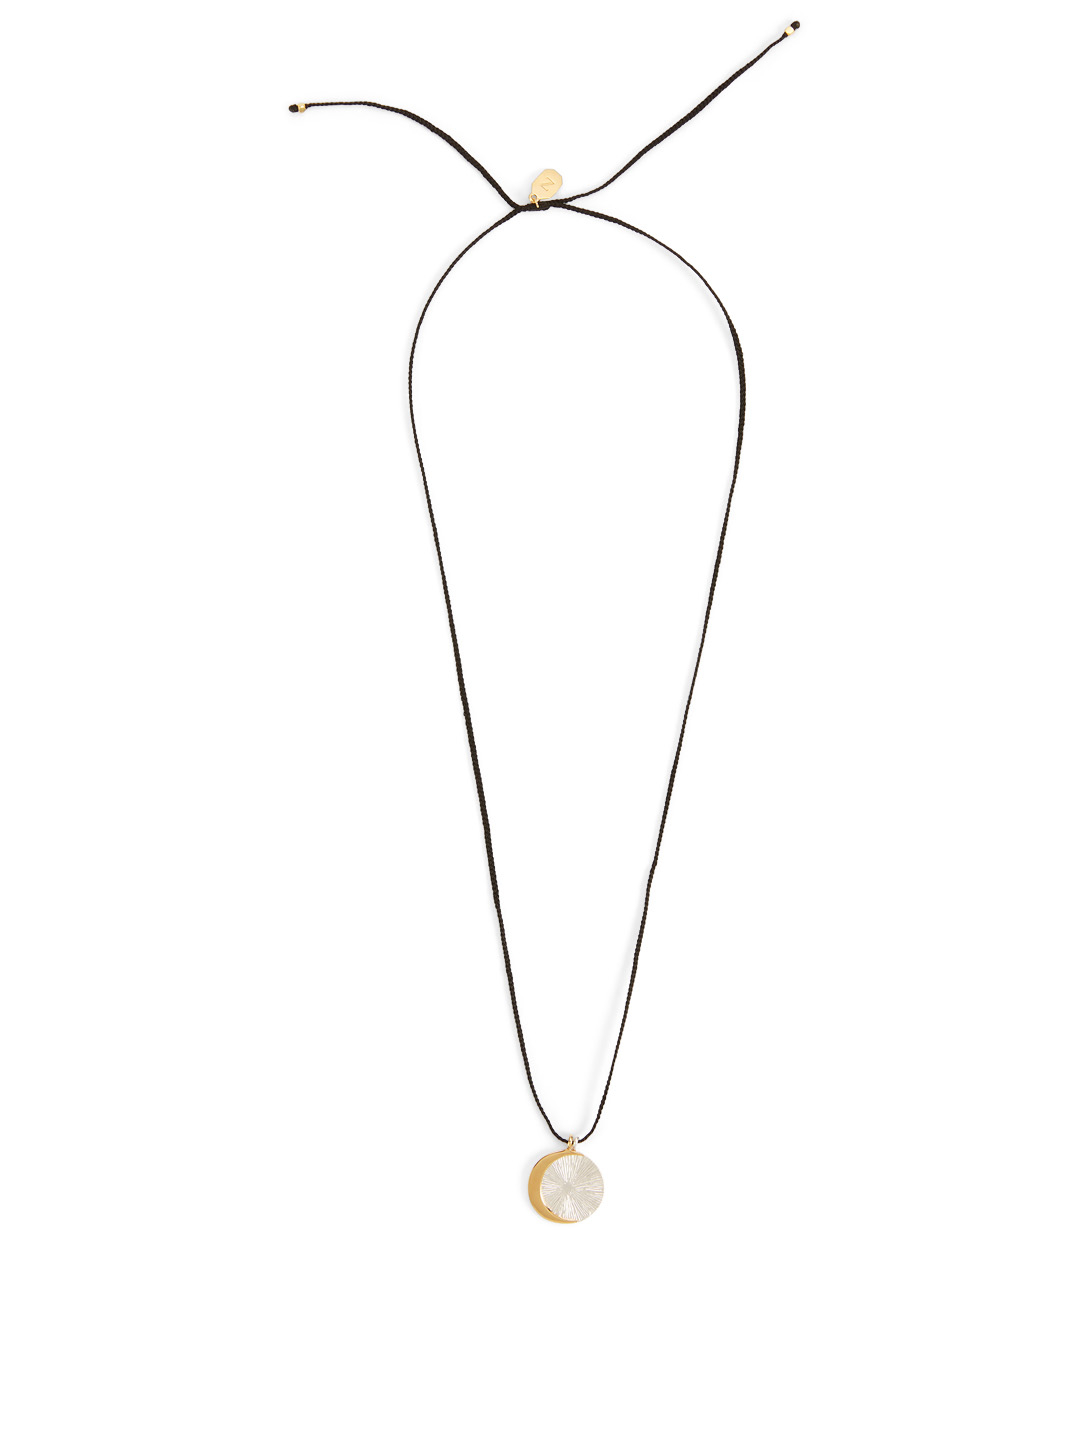 IZA JEWELRY Eclipse Sterling Silver And 18K Gold-Plated Pendant Necklace H Project Black